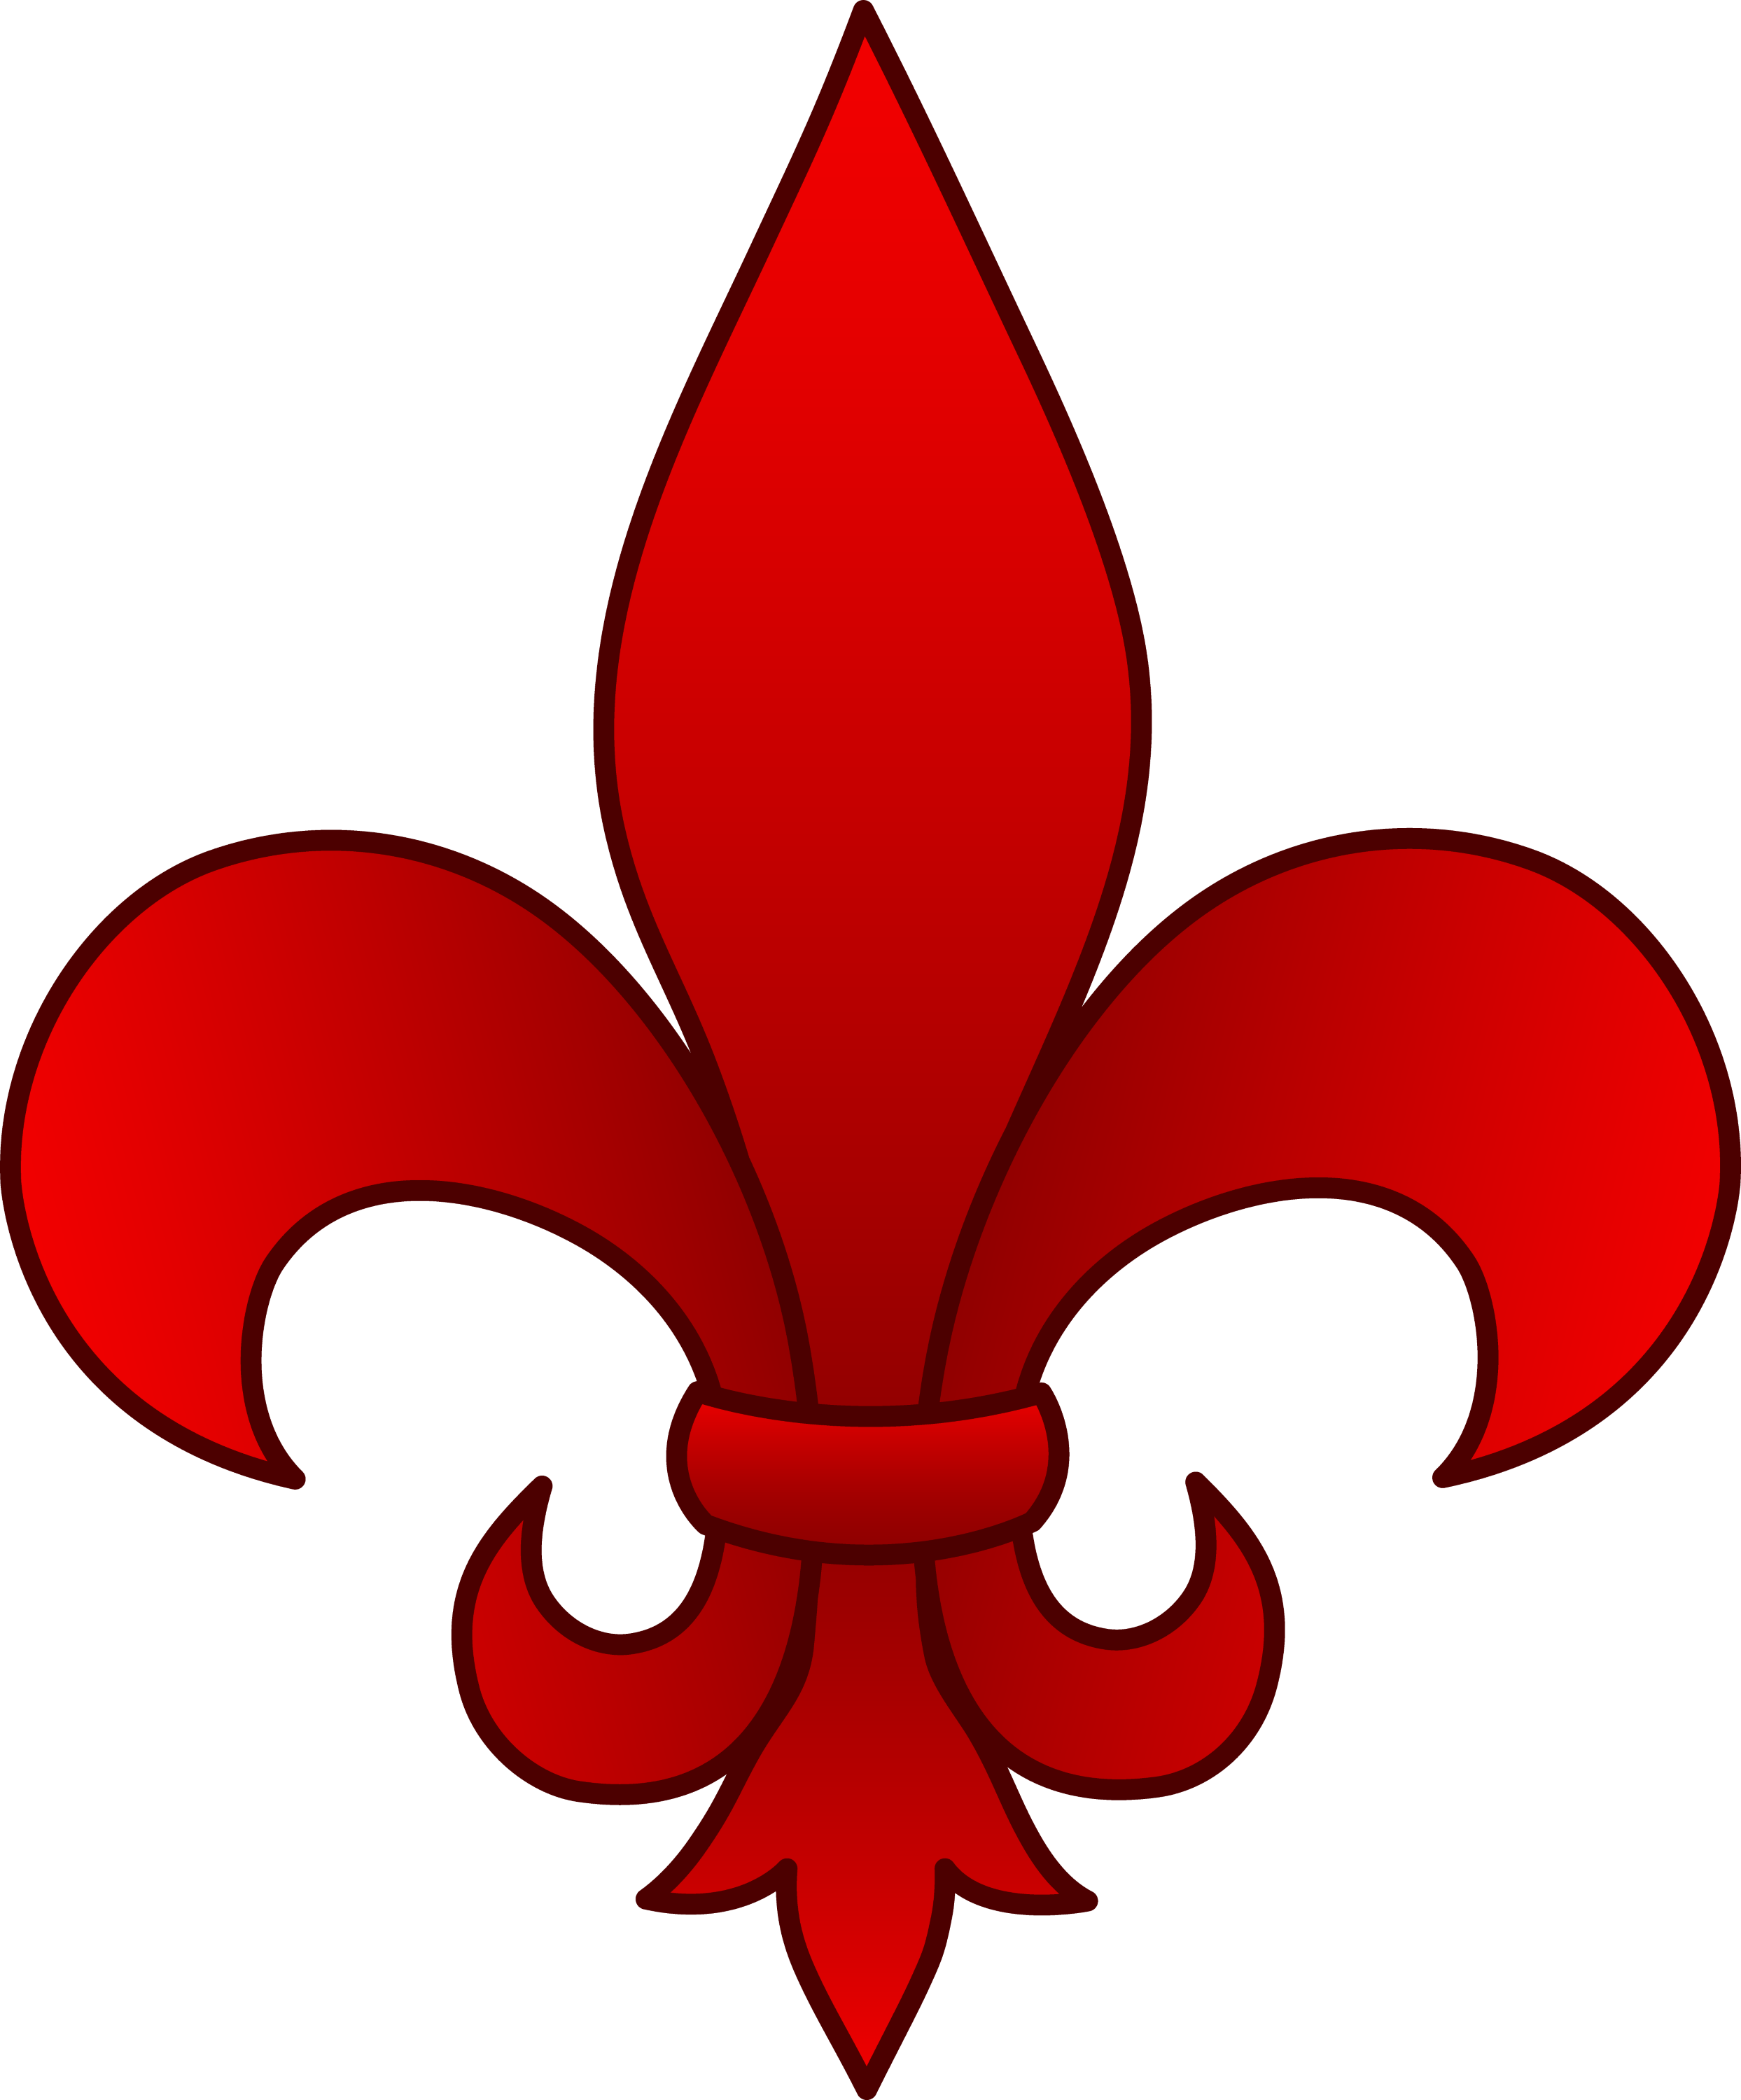 elegant red fleur de lis free clip art. Black Bedroom Furniture Sets. Home Design Ideas